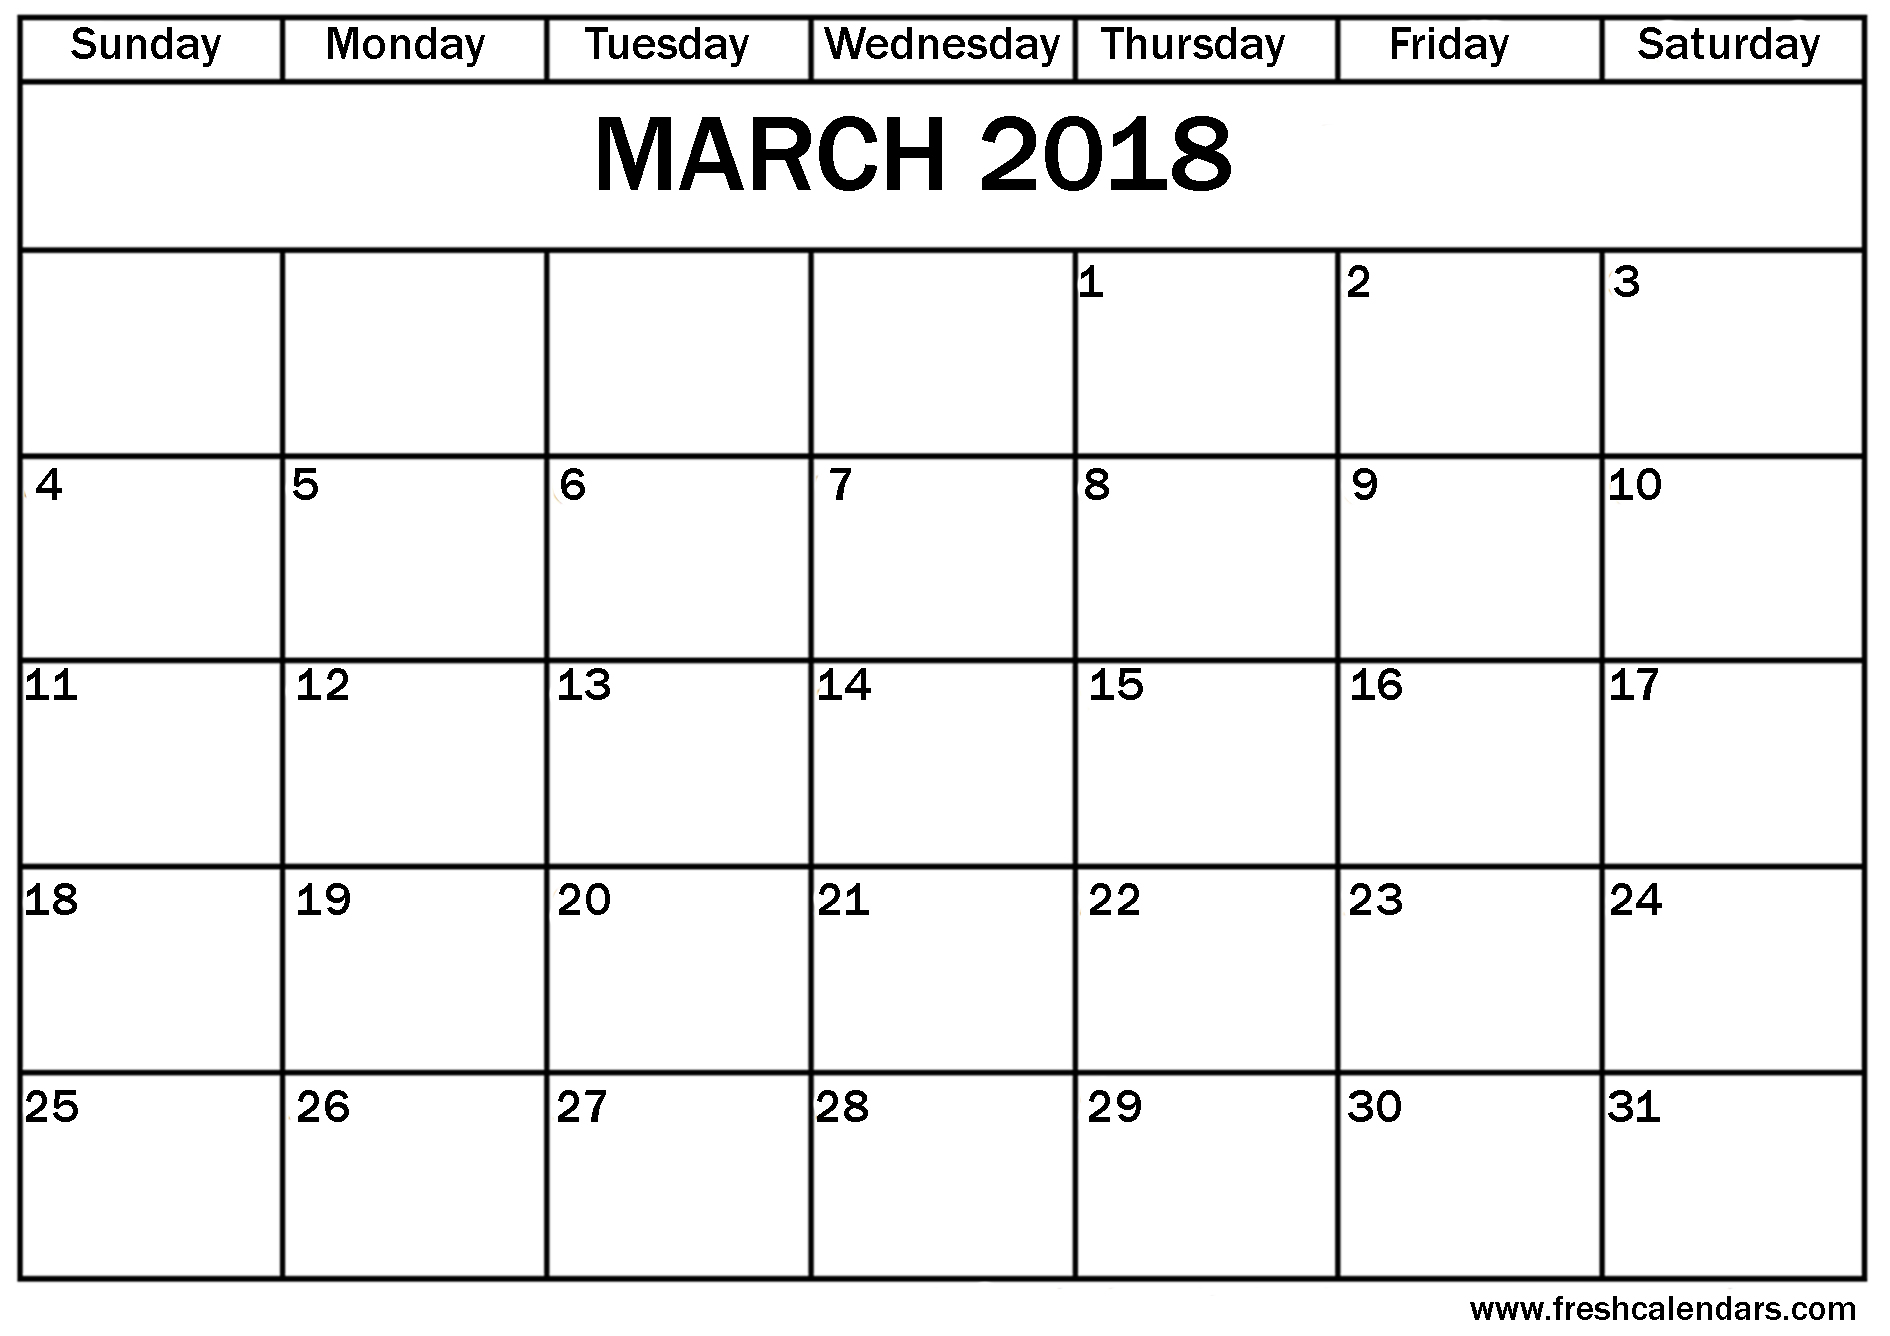 image about Vertical Calendar Printable named March 2019 Calendar Printable PDF Term Excel Record